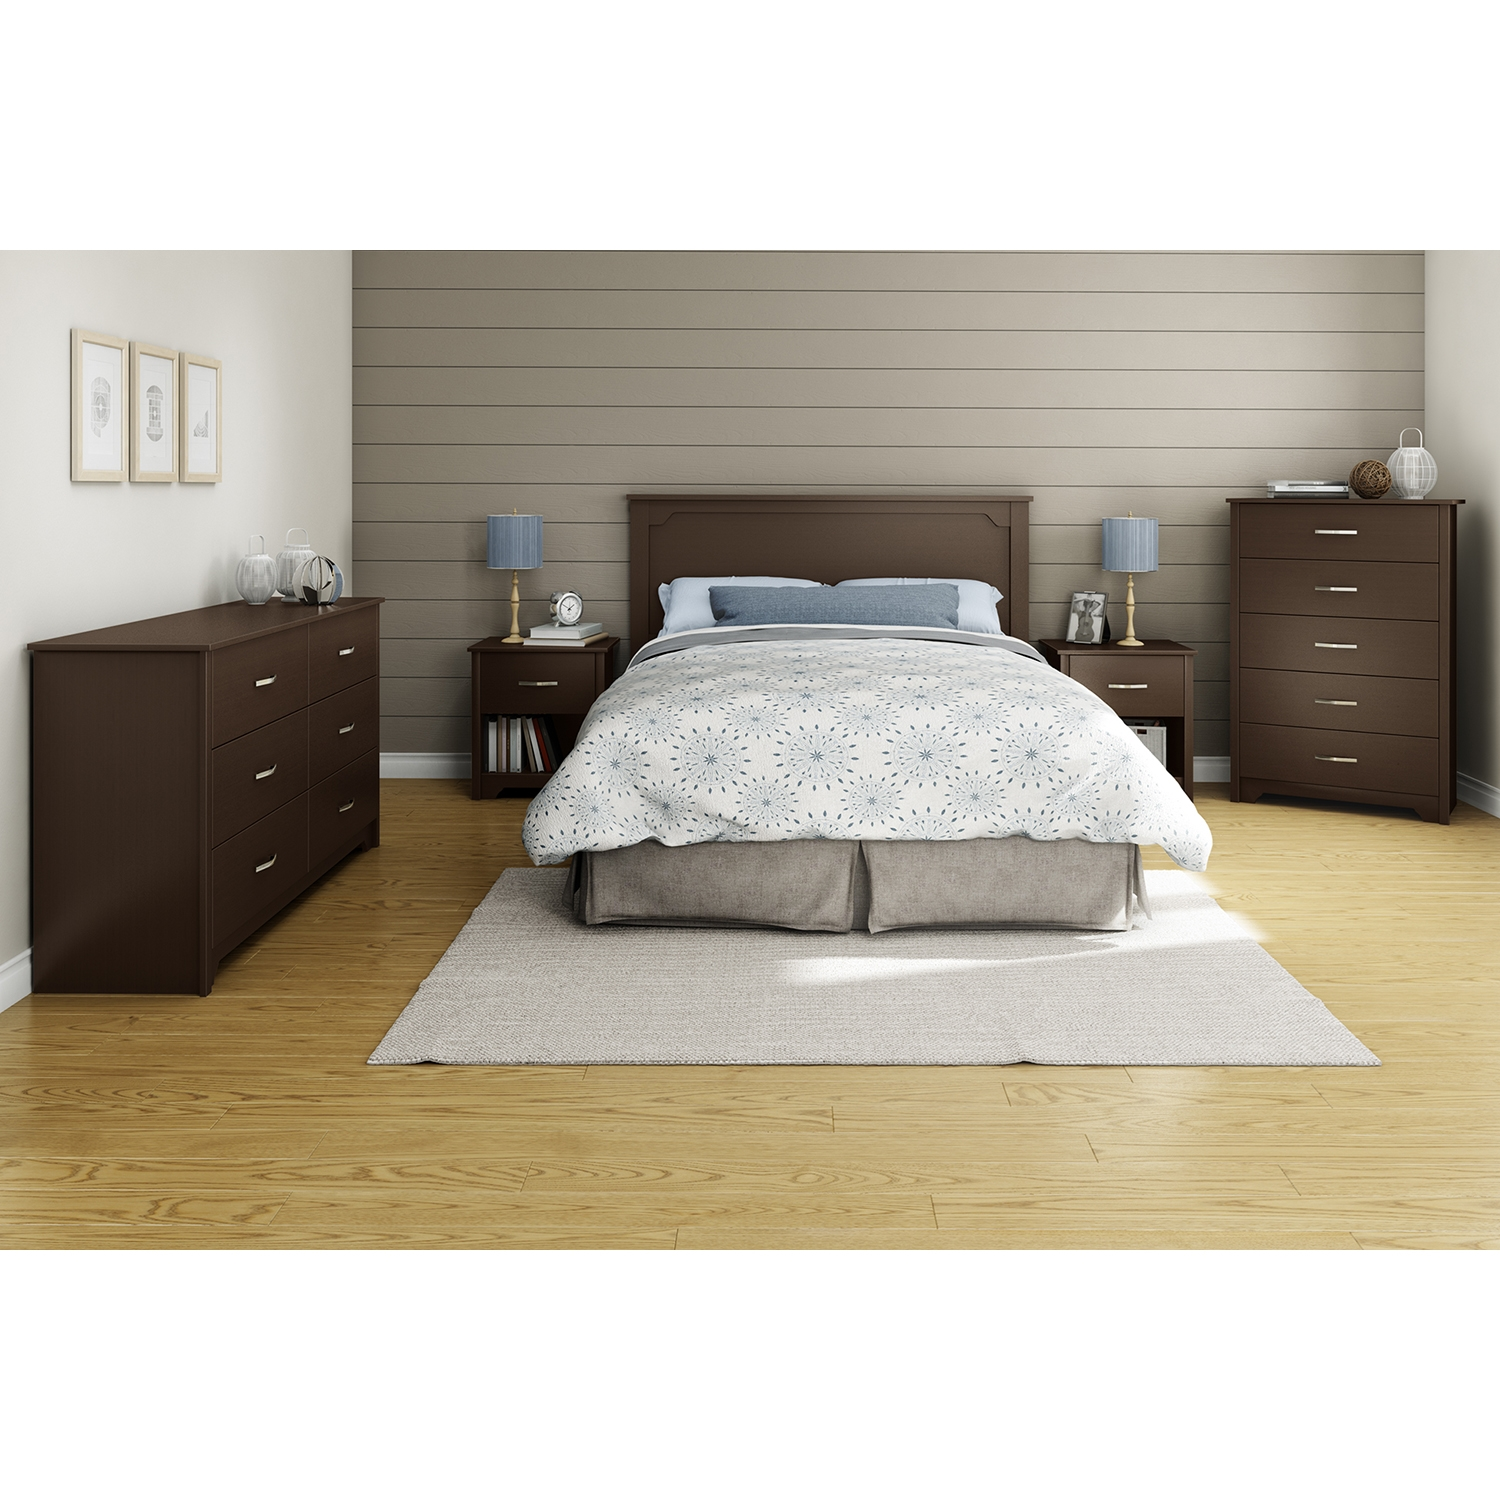 Fusion Full/Queen Headboard - Chocolate - SS-9006270